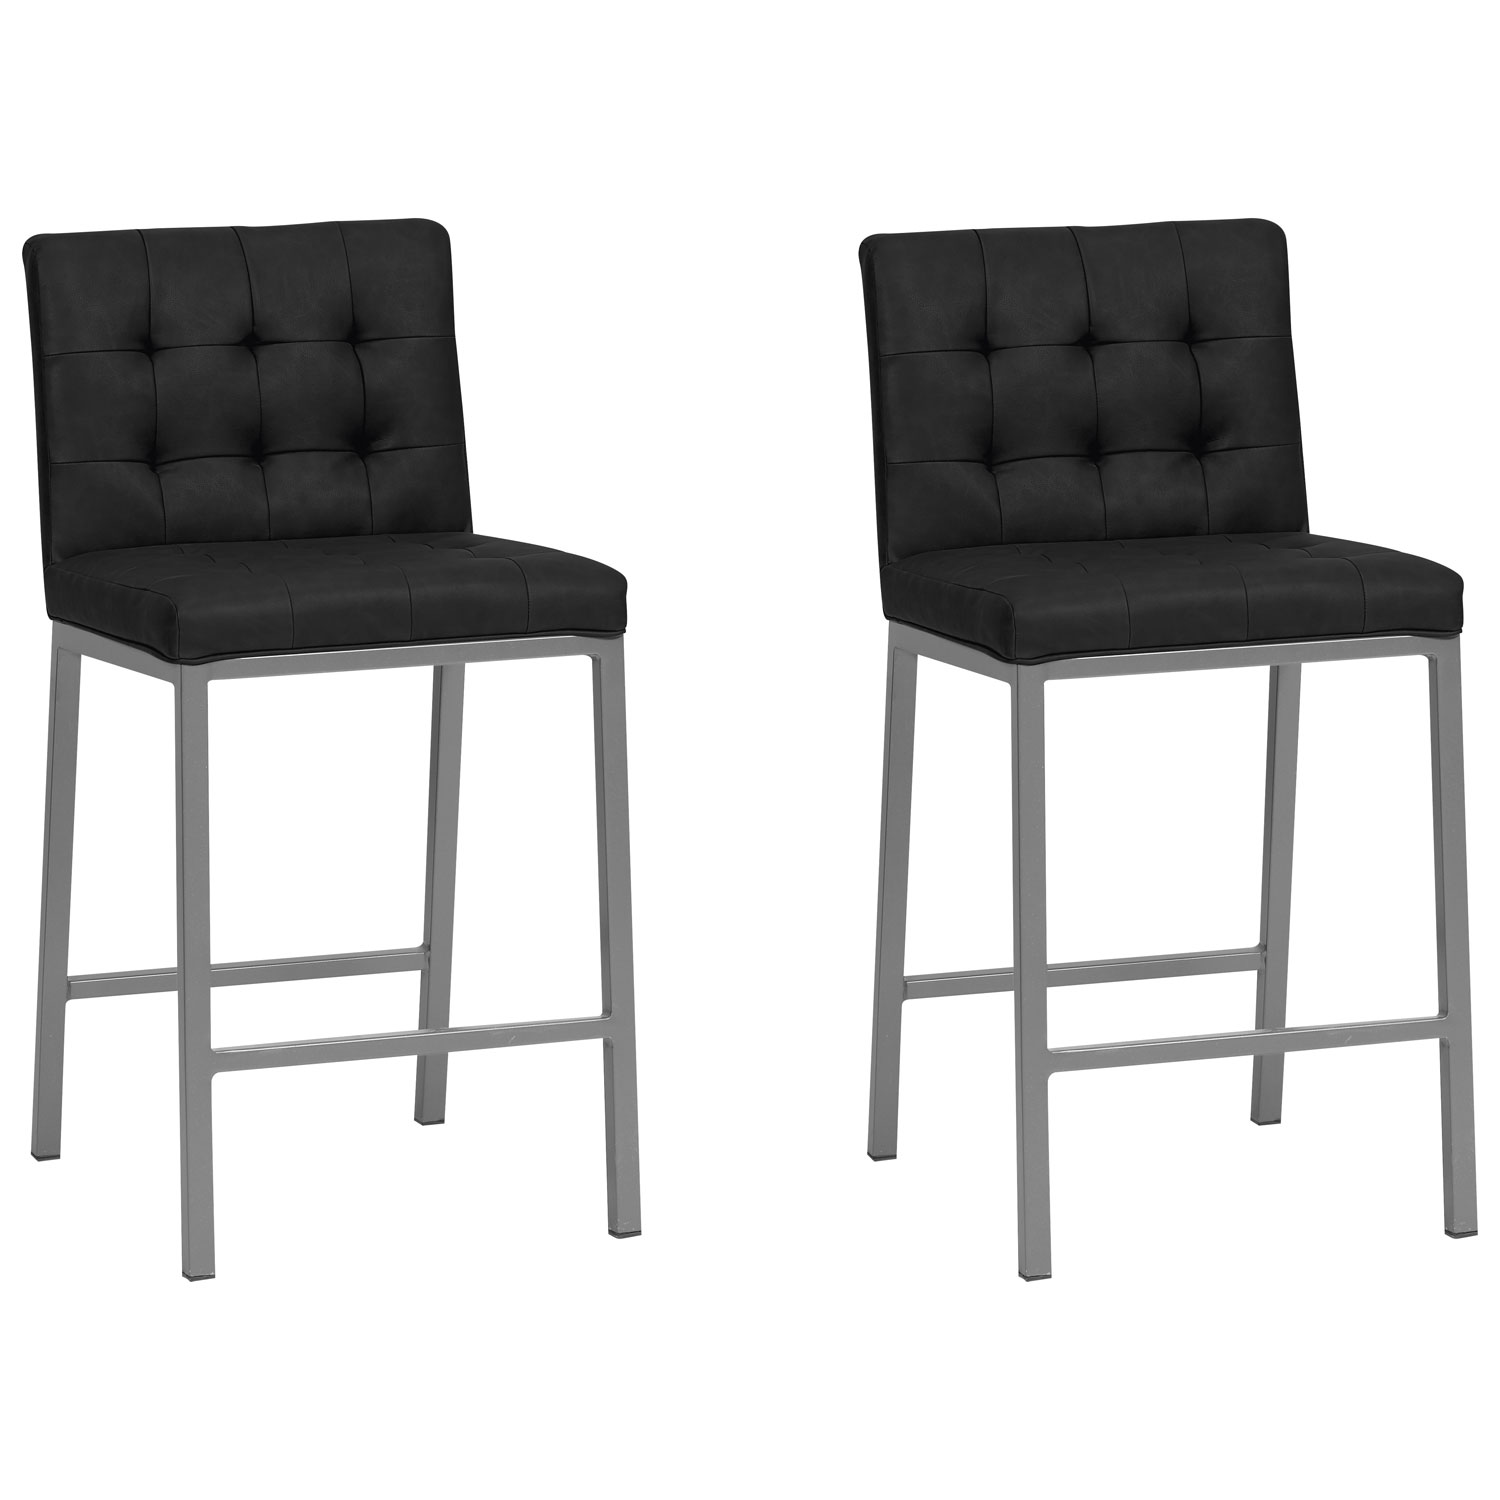 Olin Contemporary Counter Height Bar Stool Set Of 2 Blackgrey